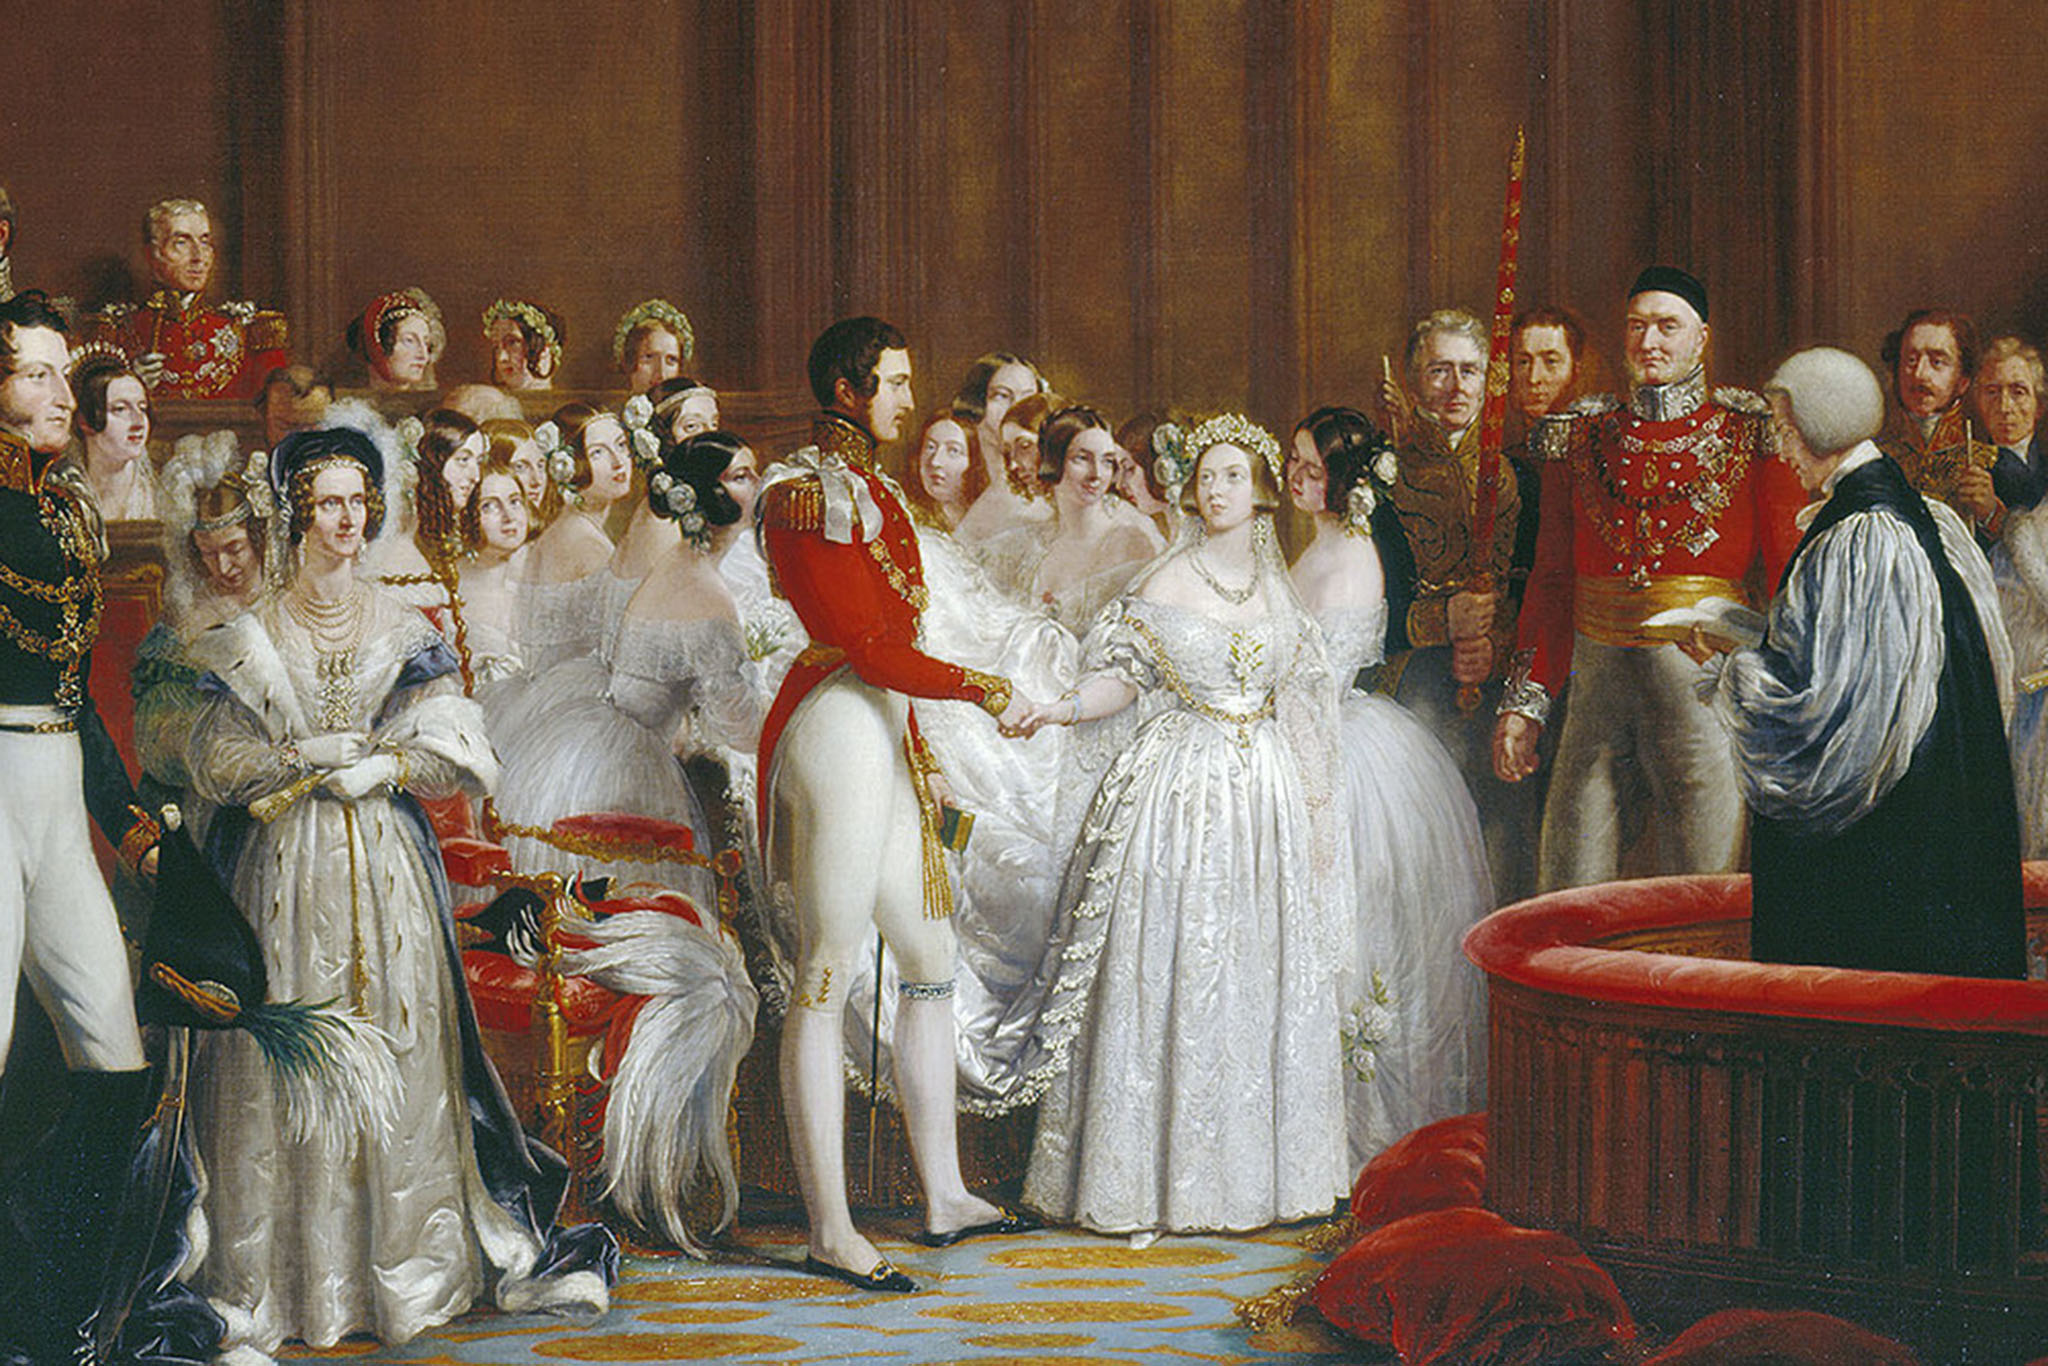 The wedding of Queen Victoria by George Hayter